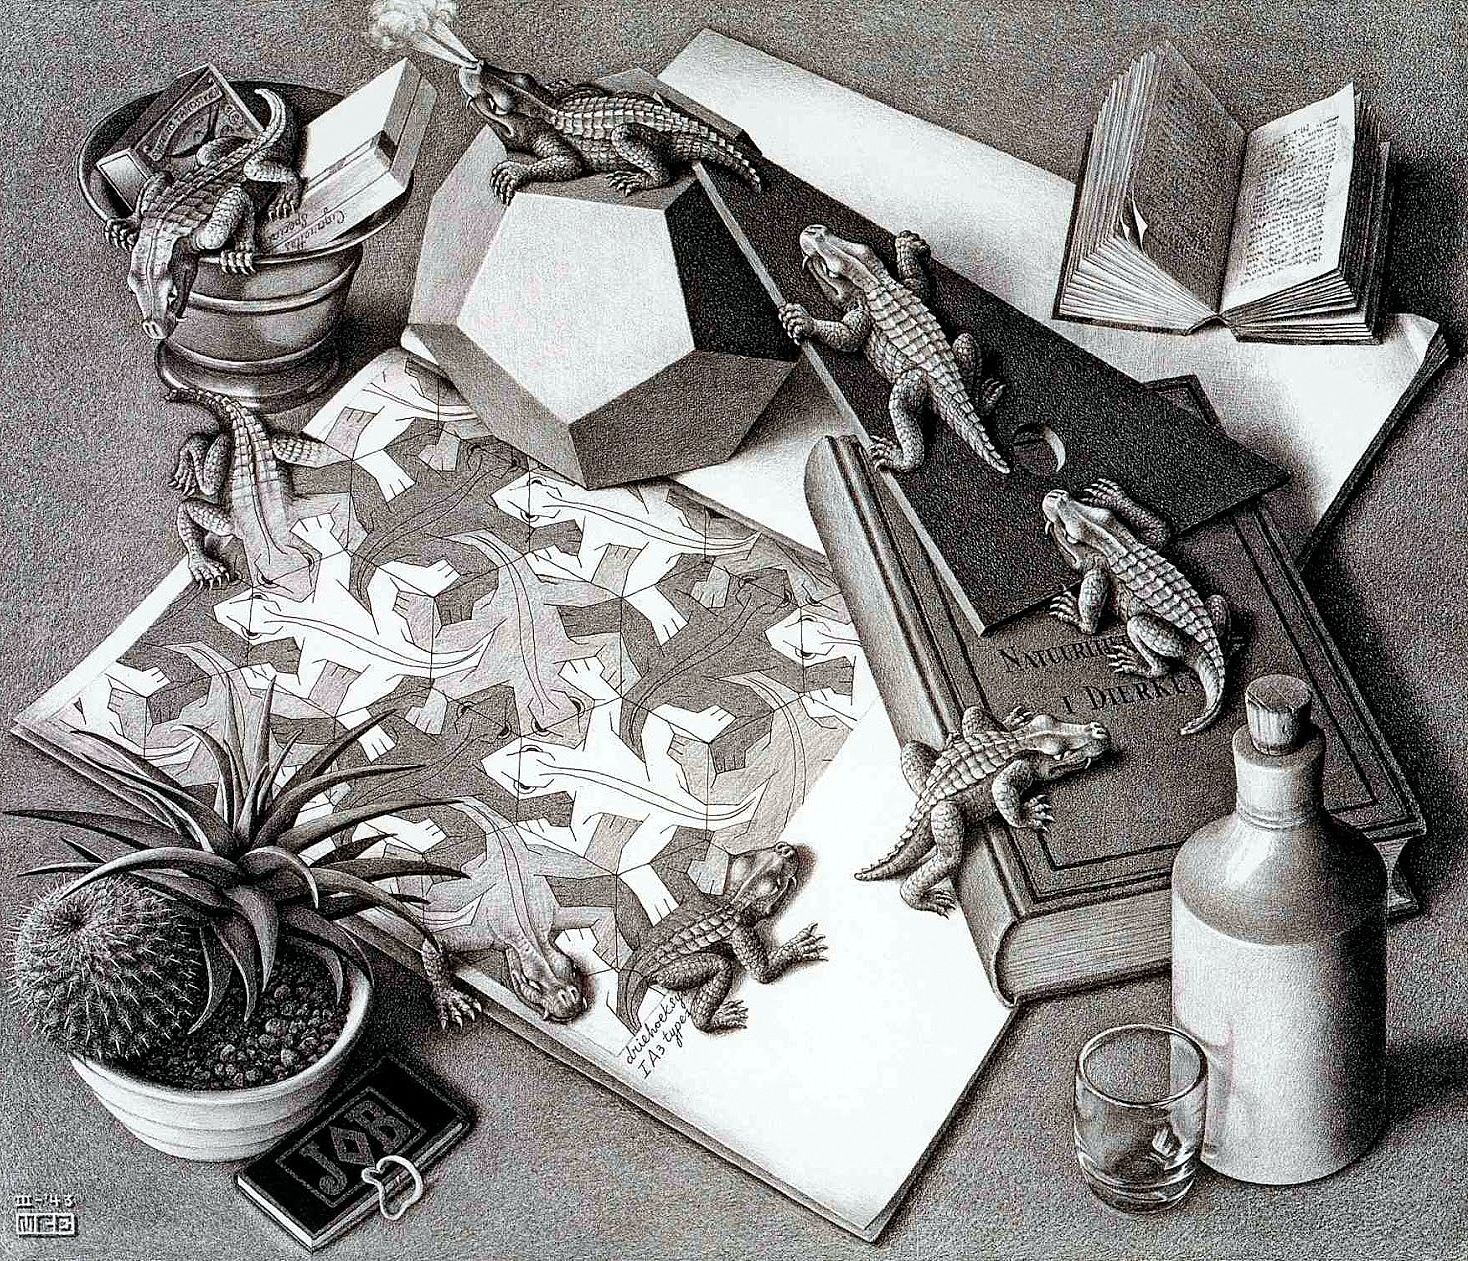 WOODCUTS AND LITHOGRAPHS - echoing patterns, space and transformation